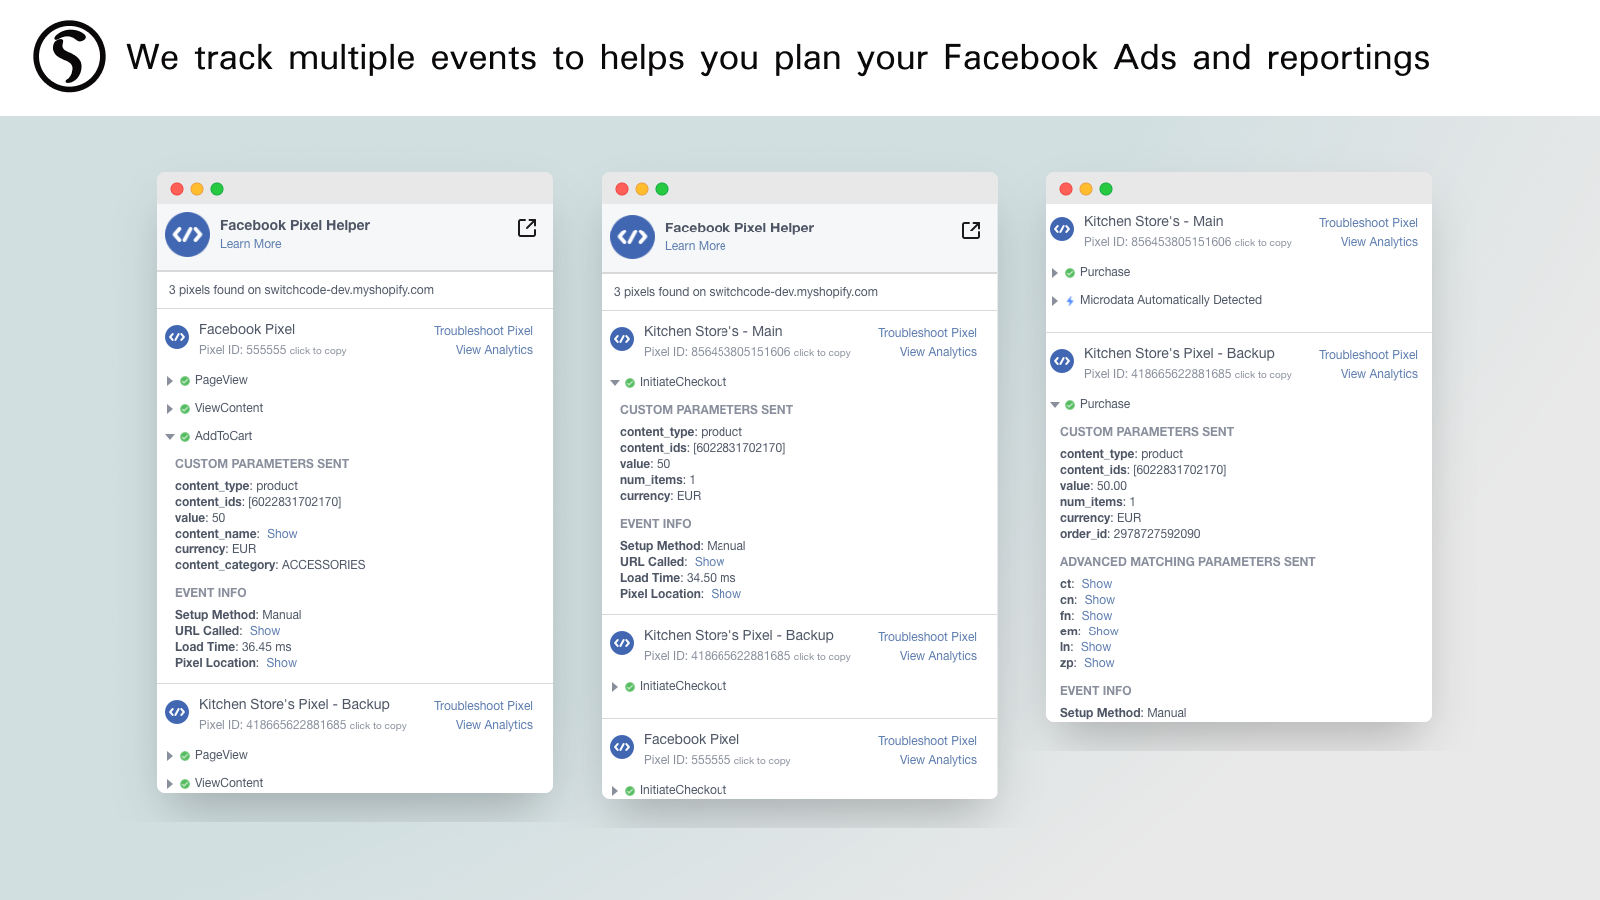 We track multiple events to helps you plan your Facebook Ads and